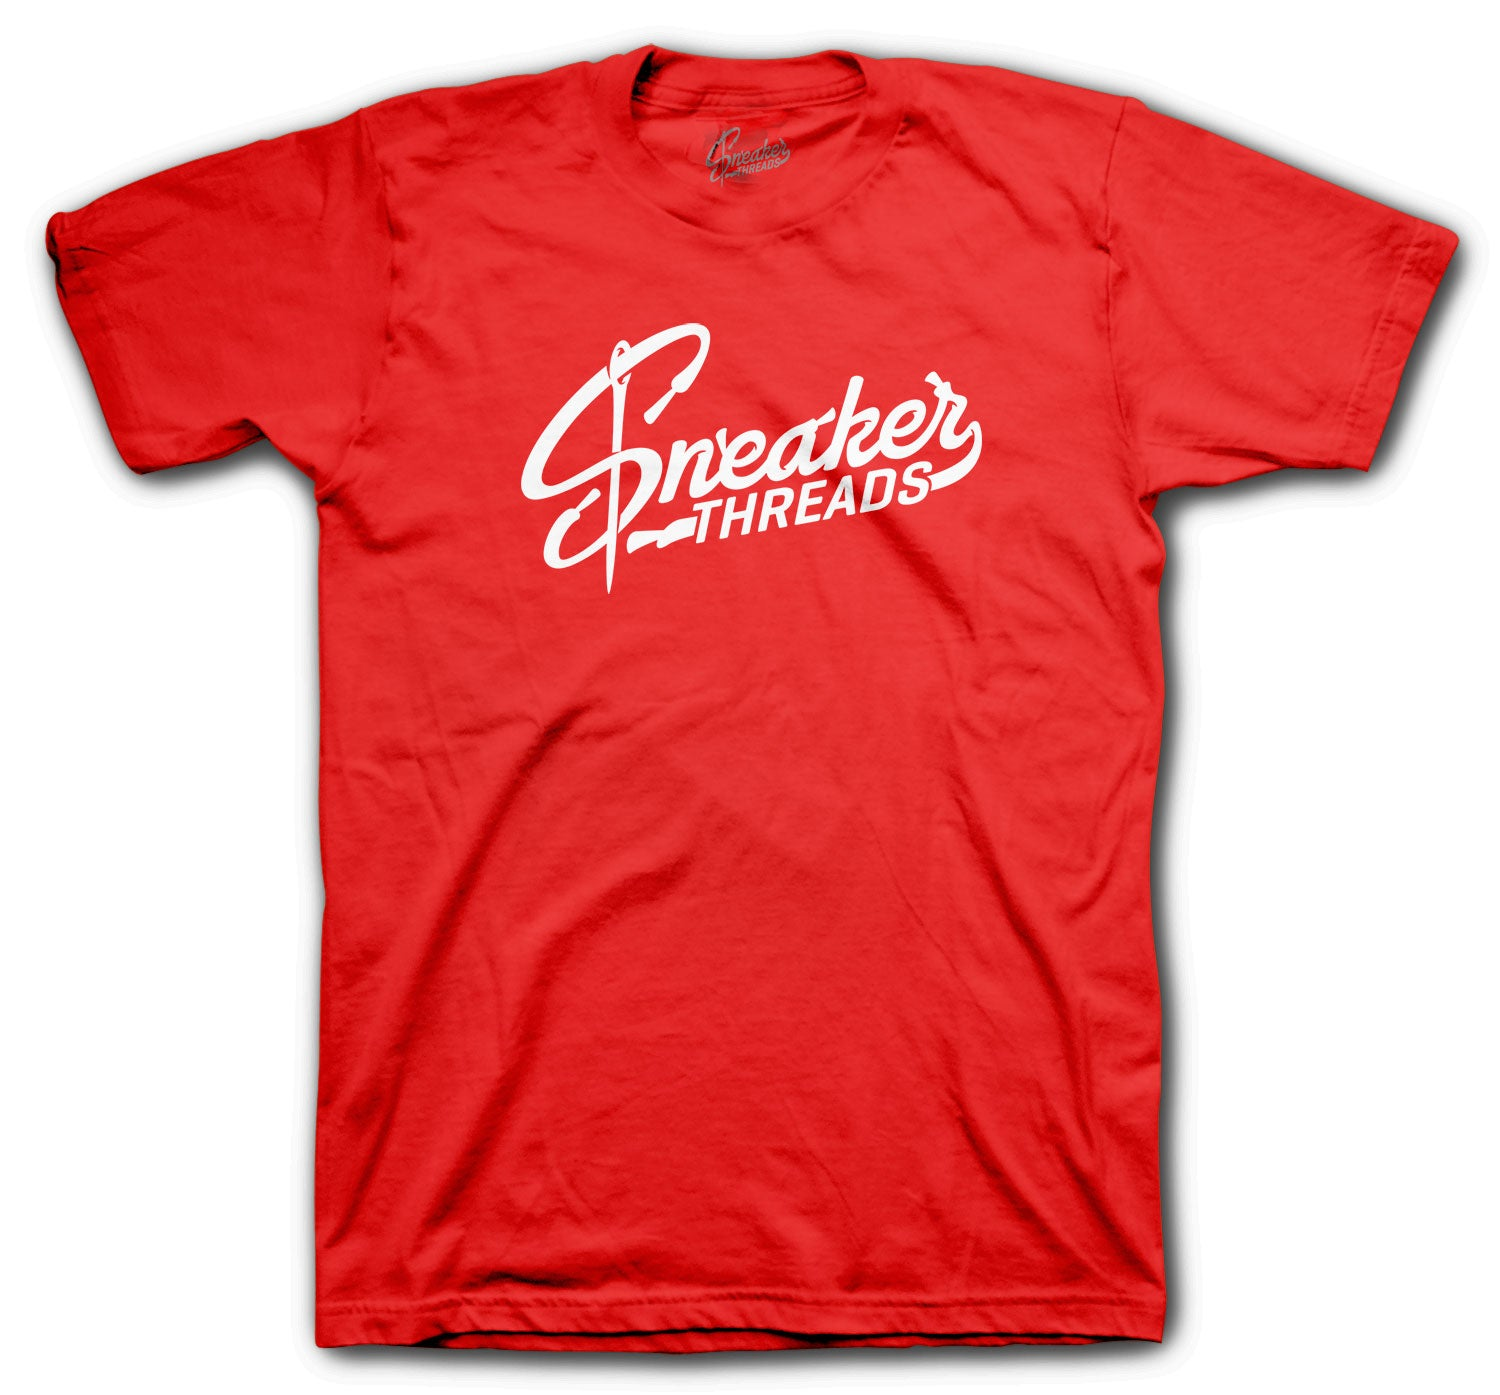 T shirt collection matches with mens sneaker Jordan 4 red metallics